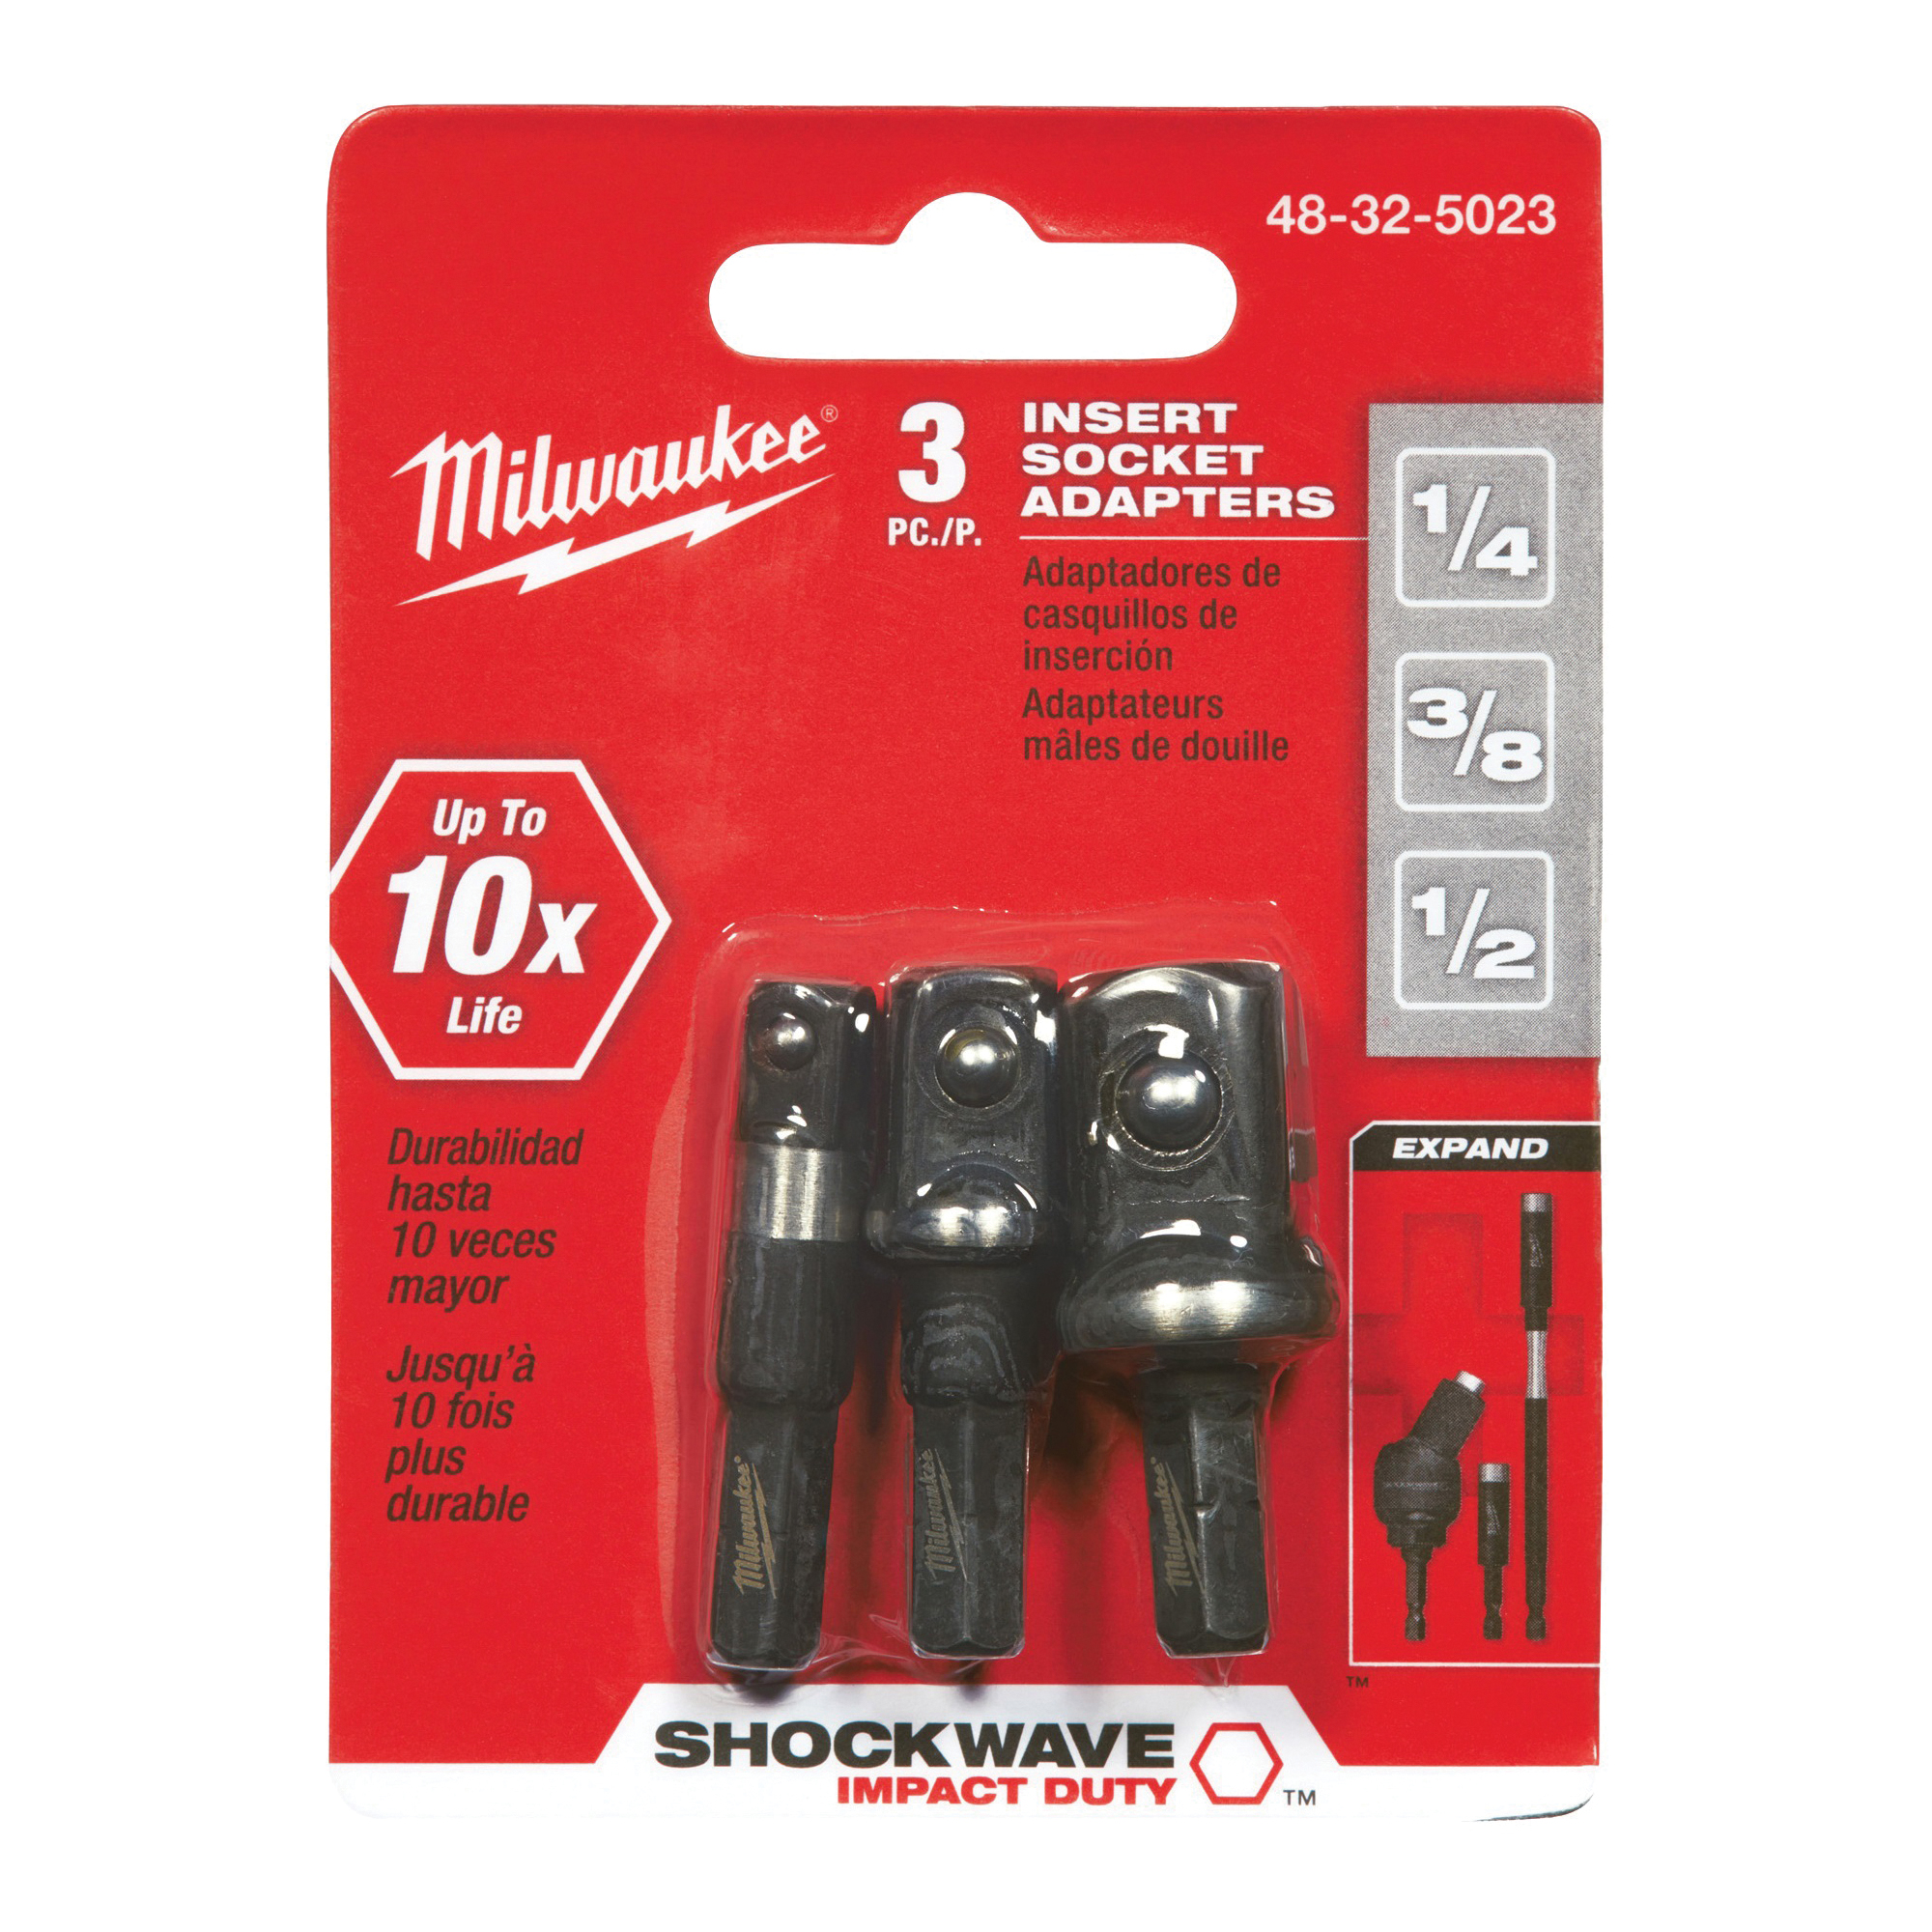 Picture of Milwaukee 48-32-5023 Socket Adapter Set, 1/4, 3/8, 1/2 in Drive, Steel